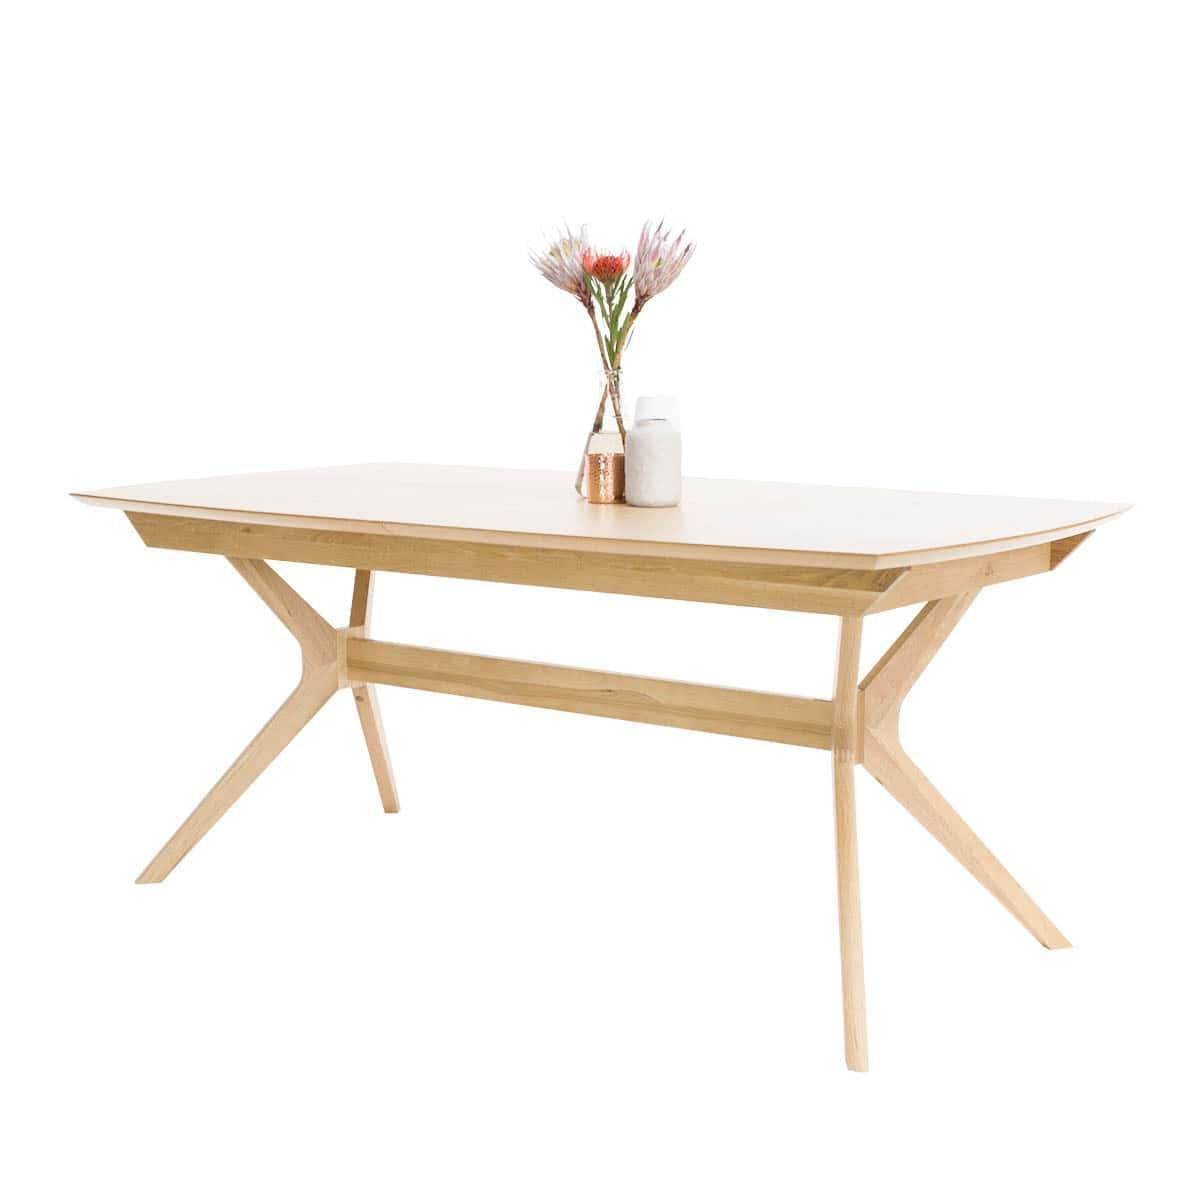 buy harper extension dining table oak online rj living rh rjliving com au